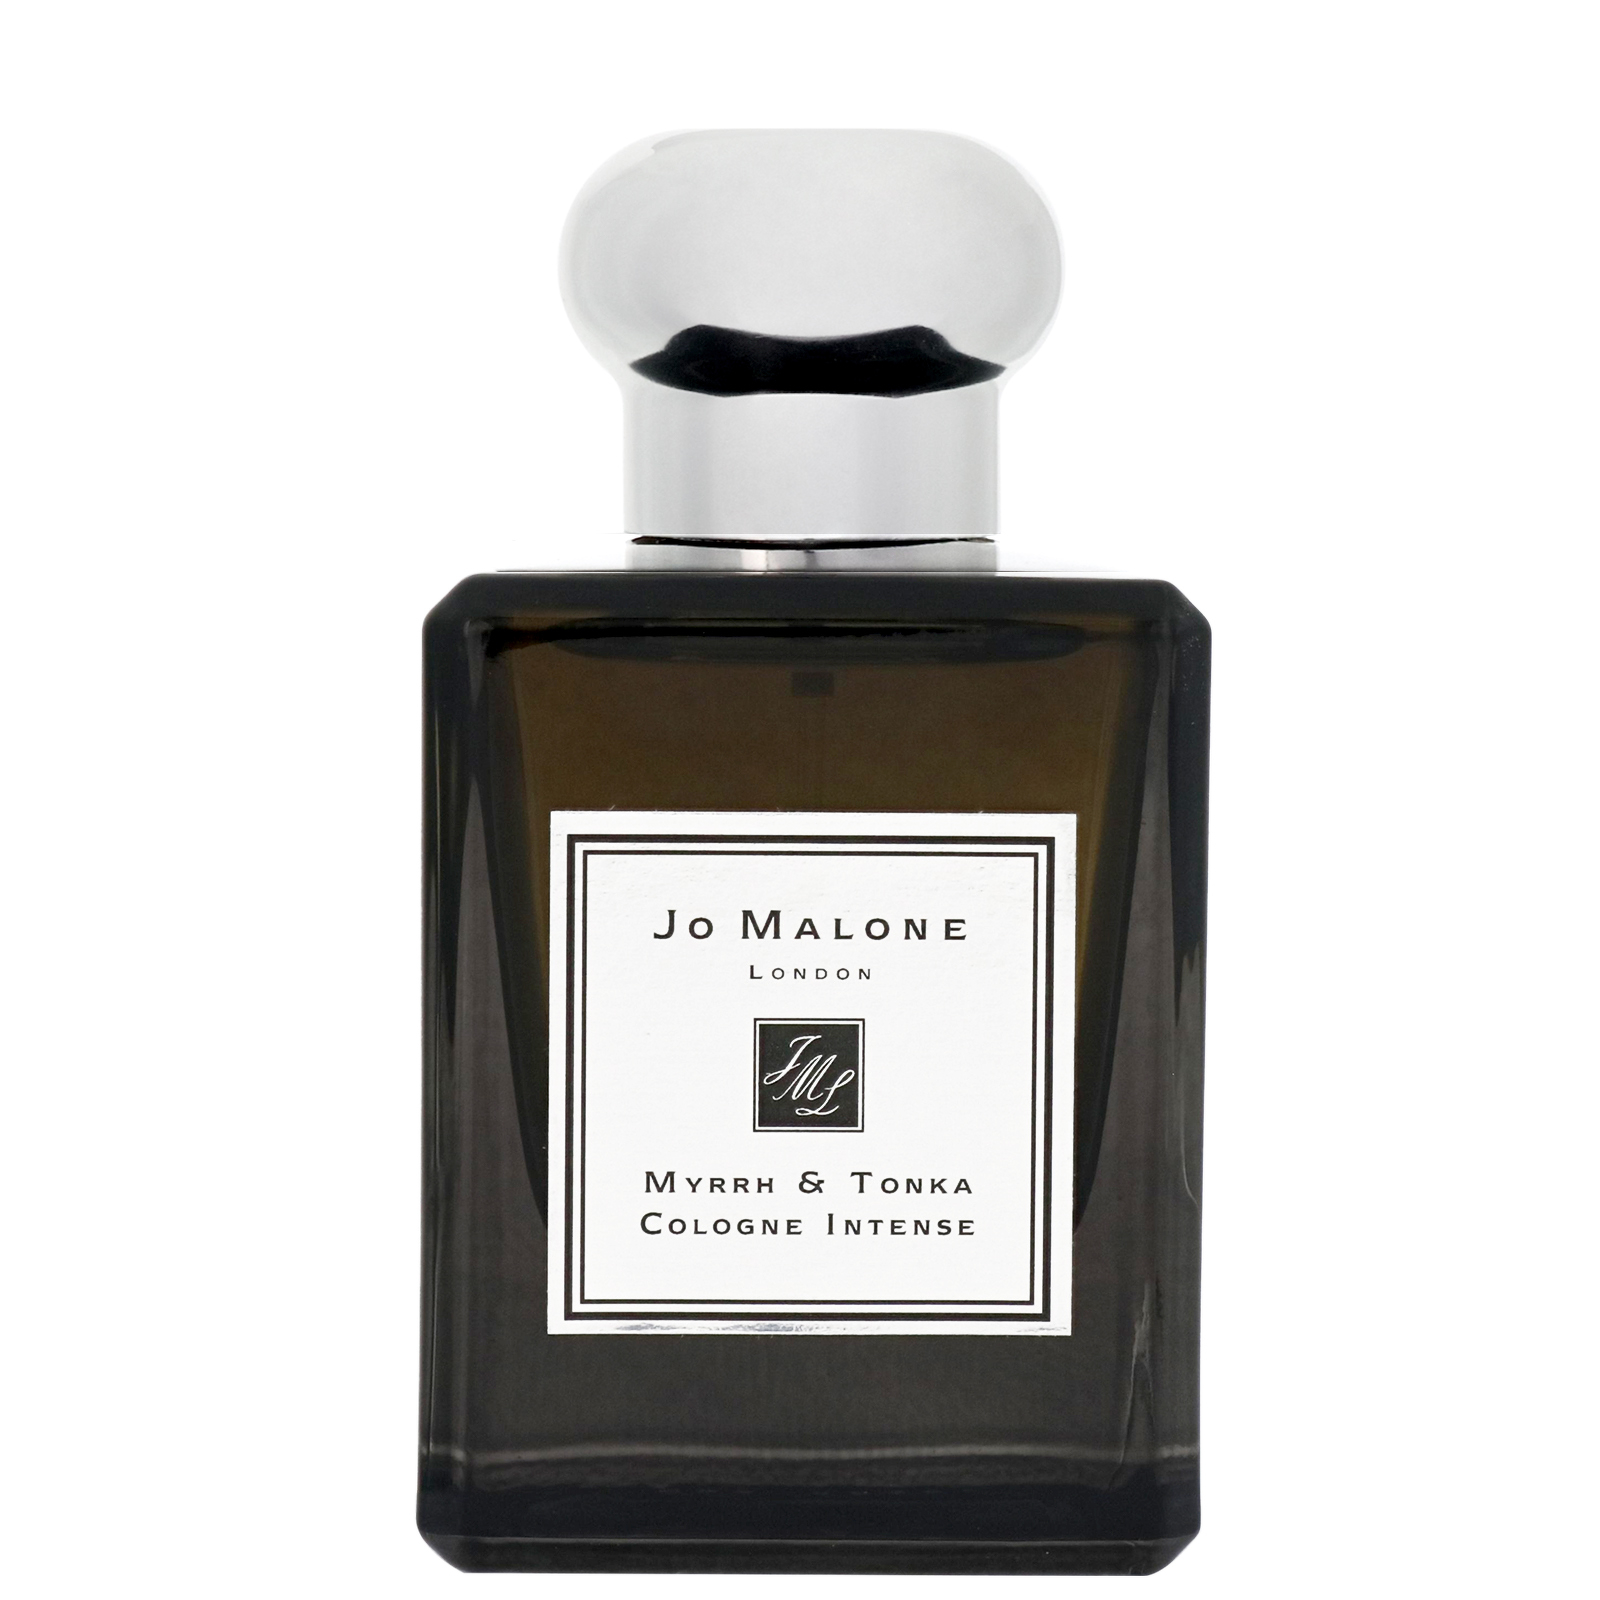 Jo Malone Myrrh & Tonka Eau de Cologne Intense Spray 50ml